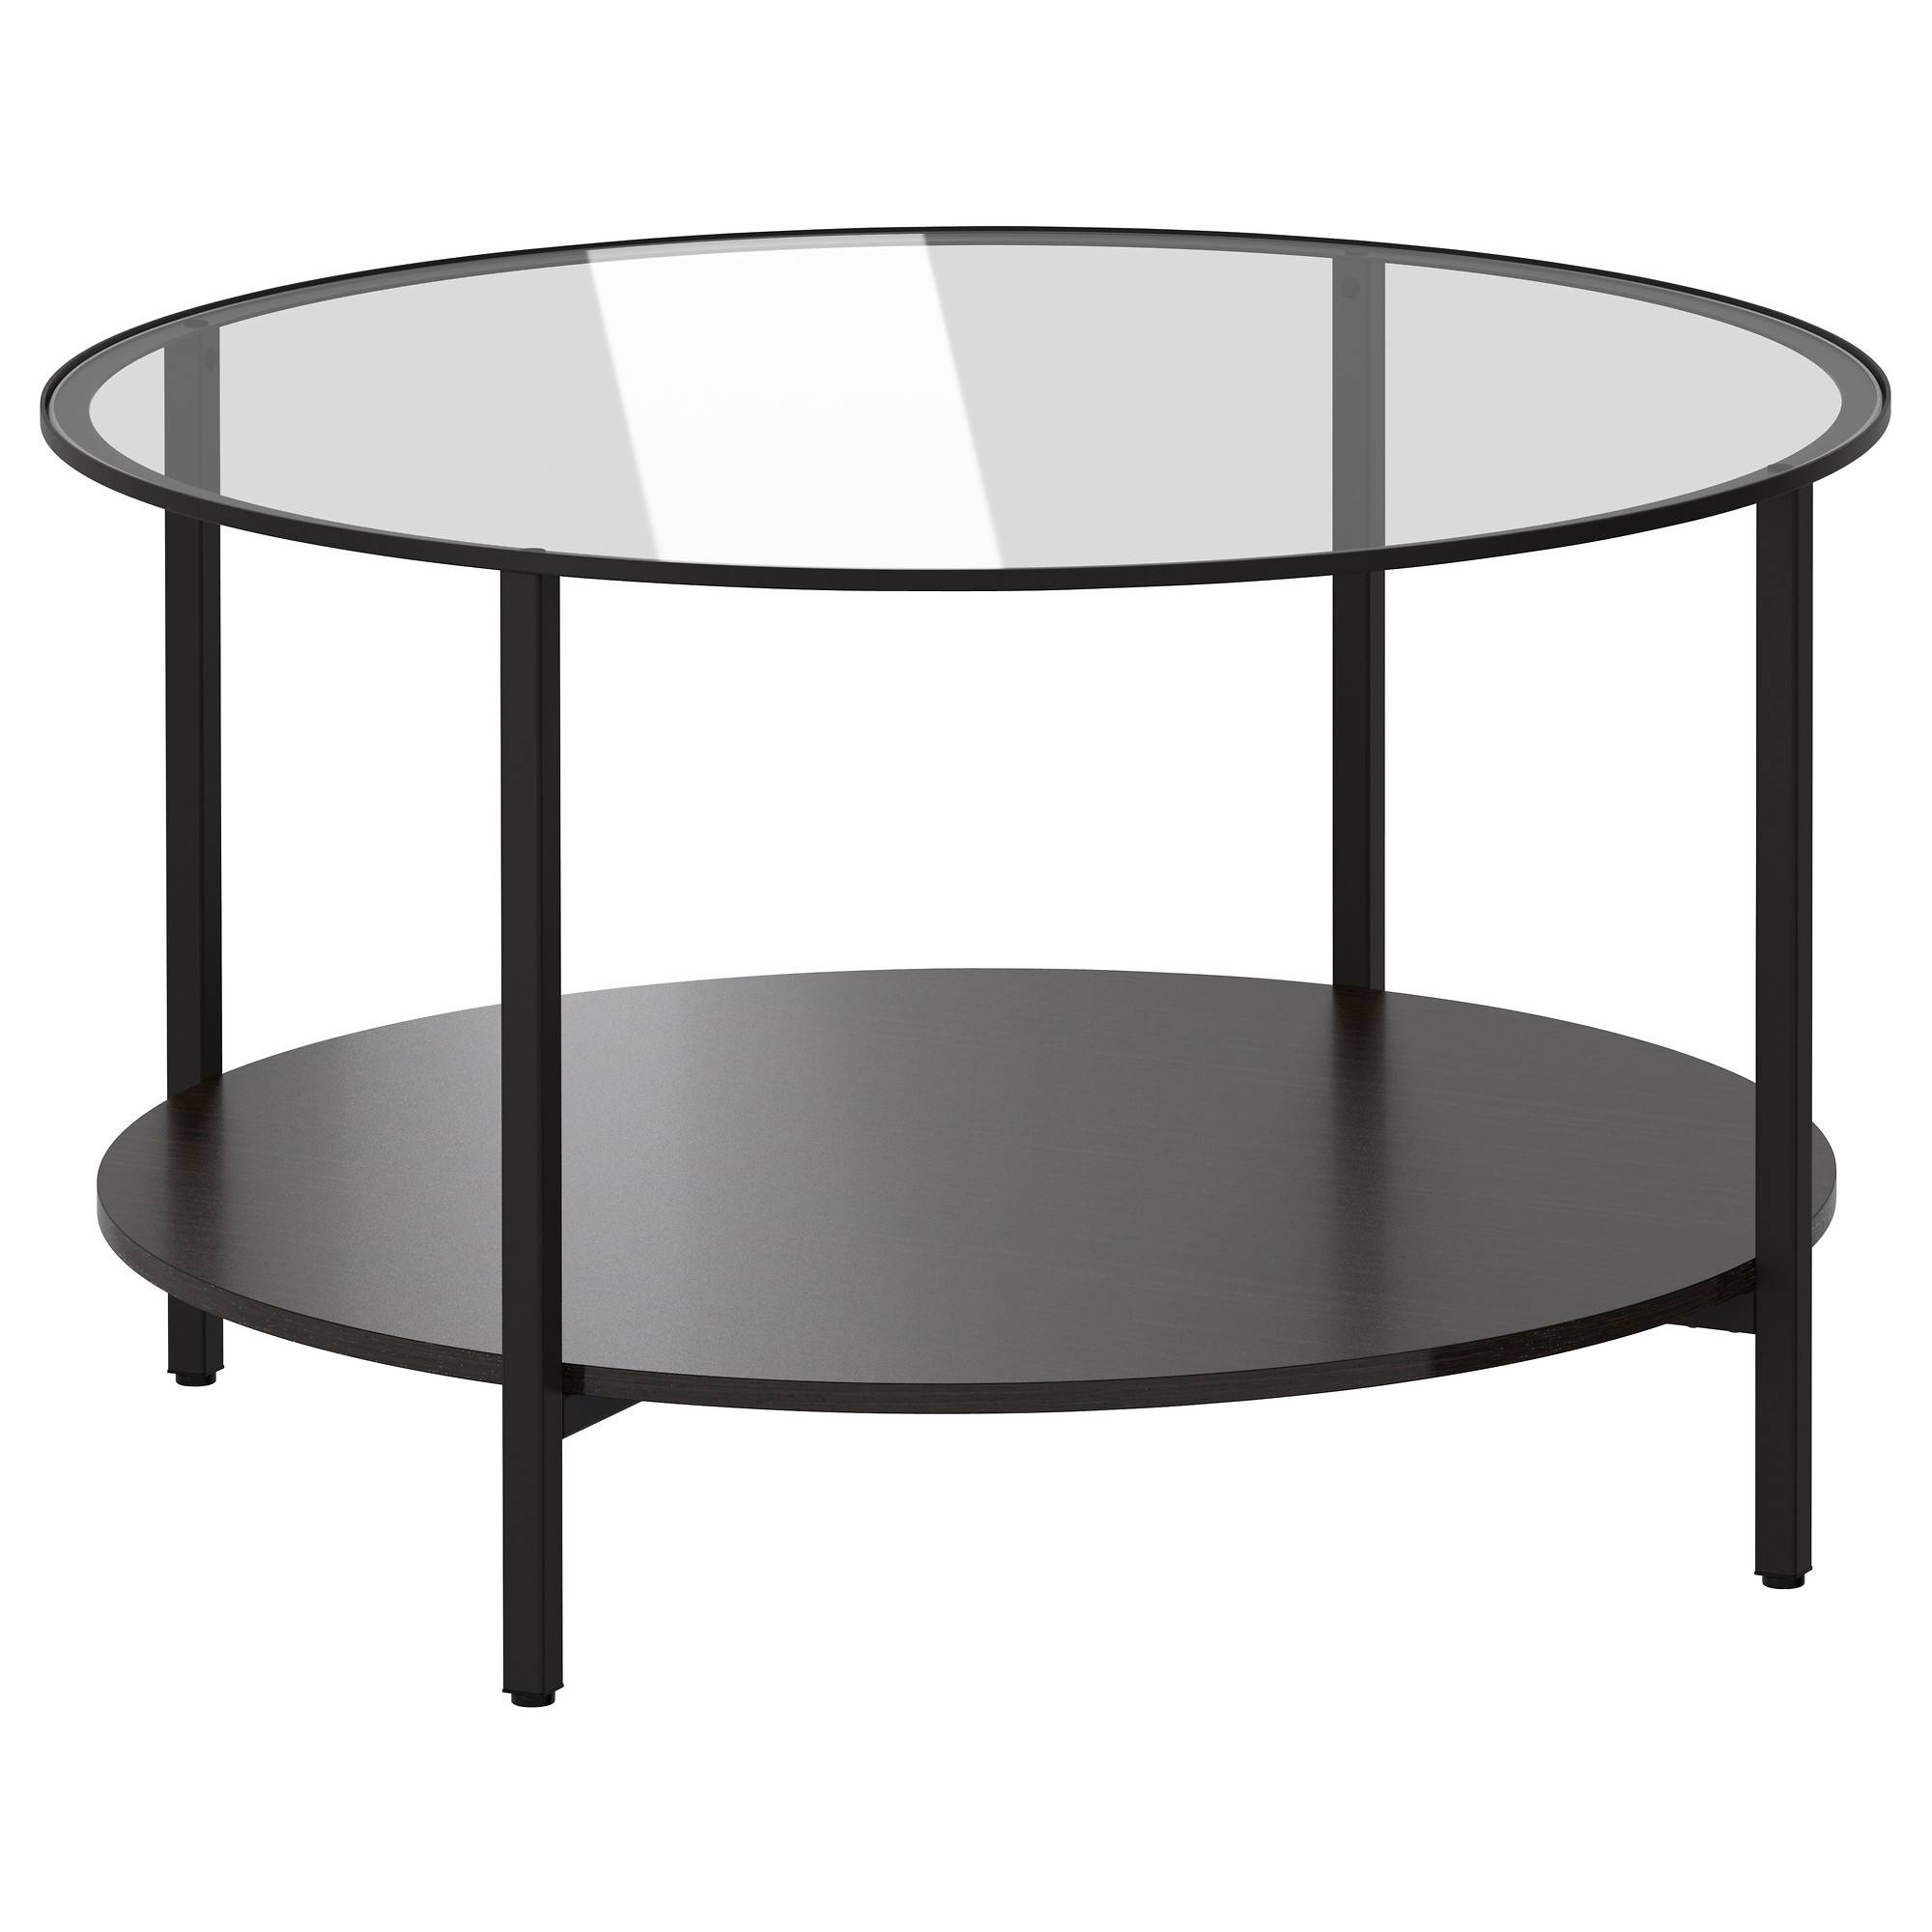 Vittsjö Coffee Table - Black-Brown/glass - Ikea inside Glass and Black Coffee Tables (Image 30 of 30)